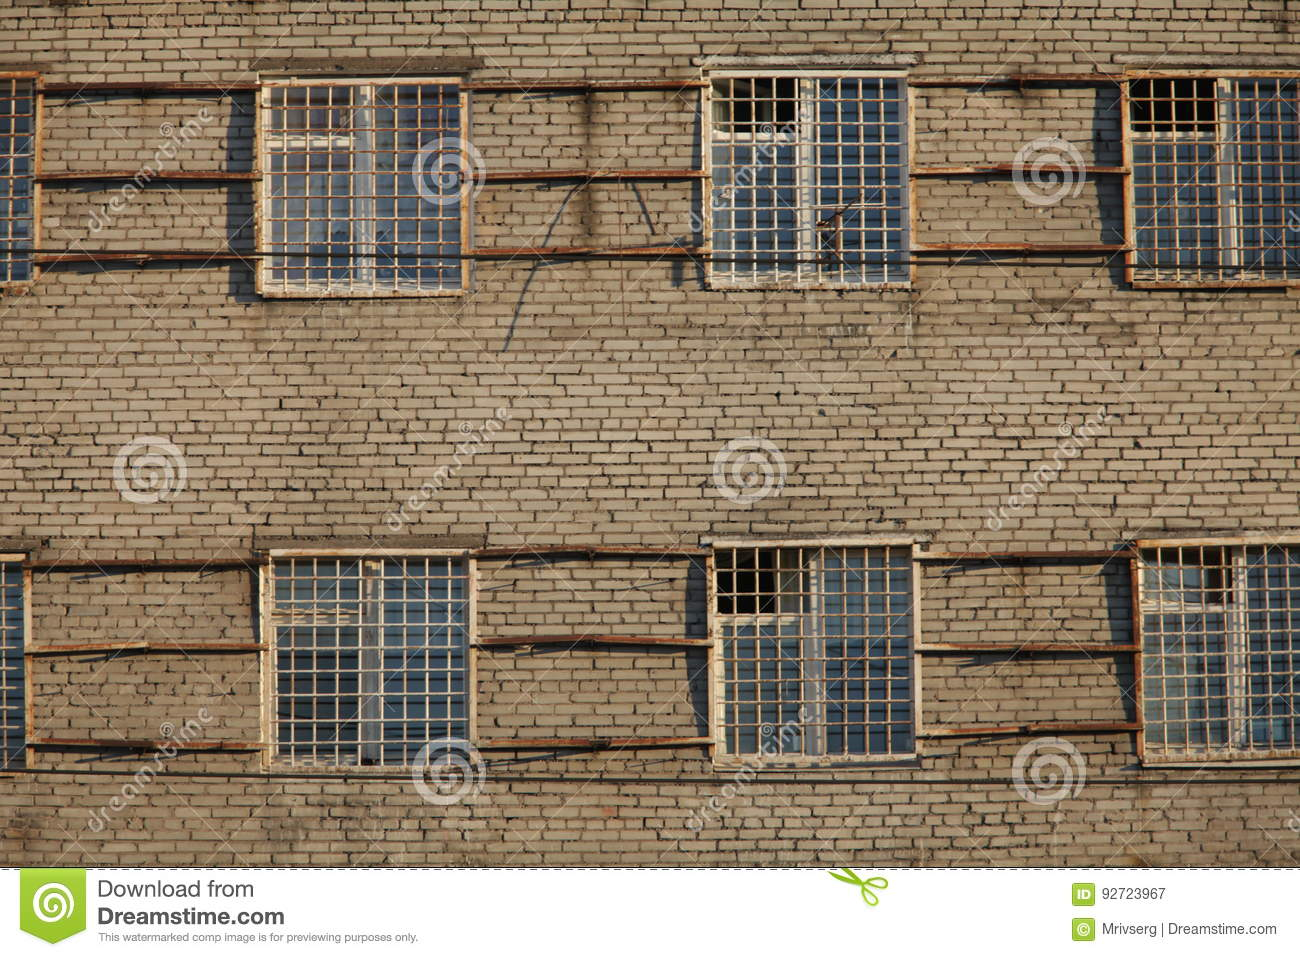 Apartments With Bars On Windows Stock Image - Image of background ...